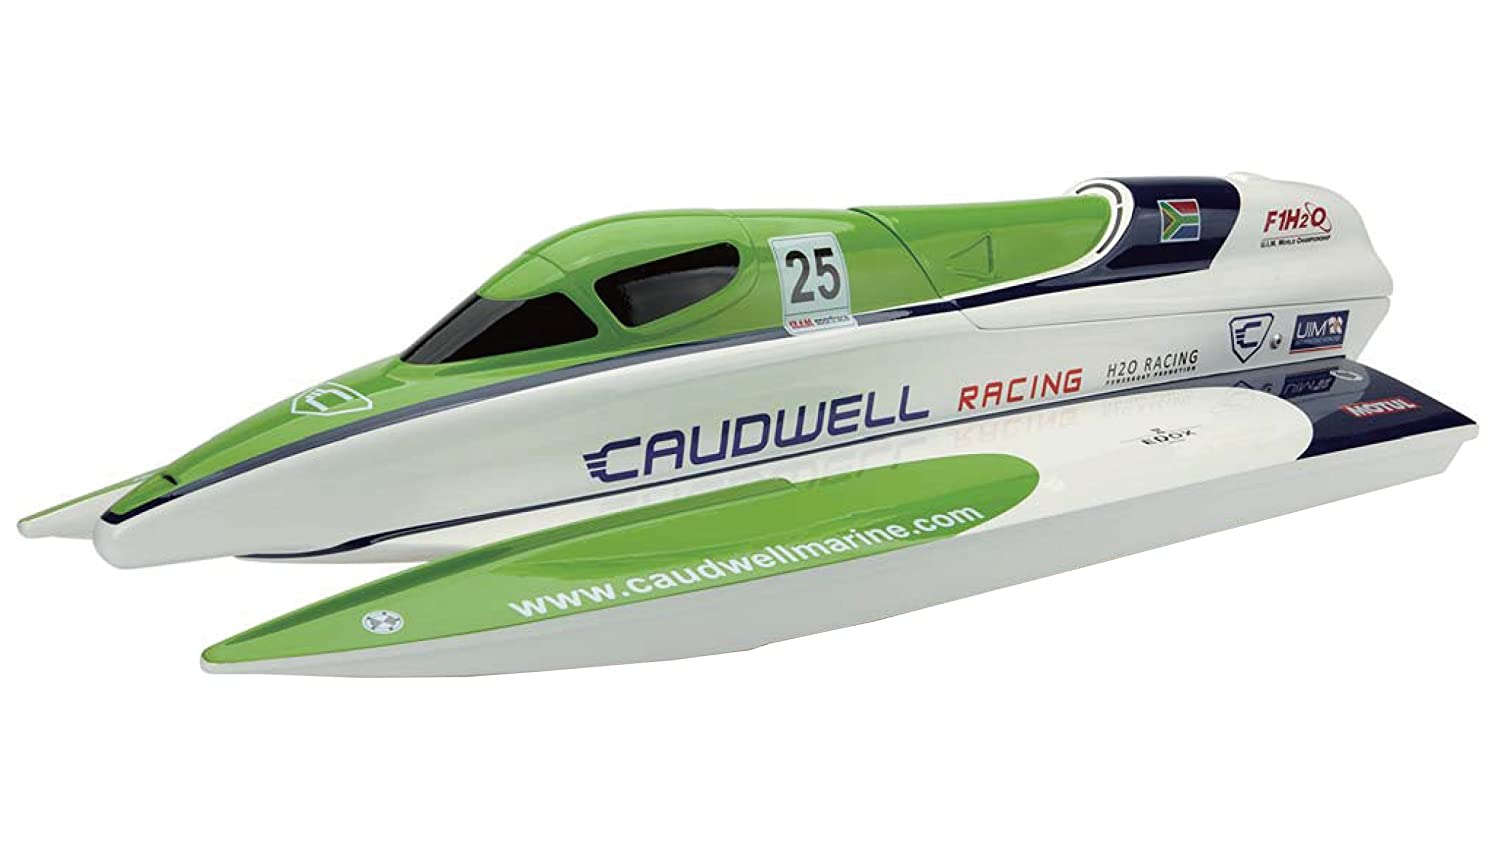 Amewi 26057 Stiefel F1 ARTR Caudwell Racing-AMX Boat line